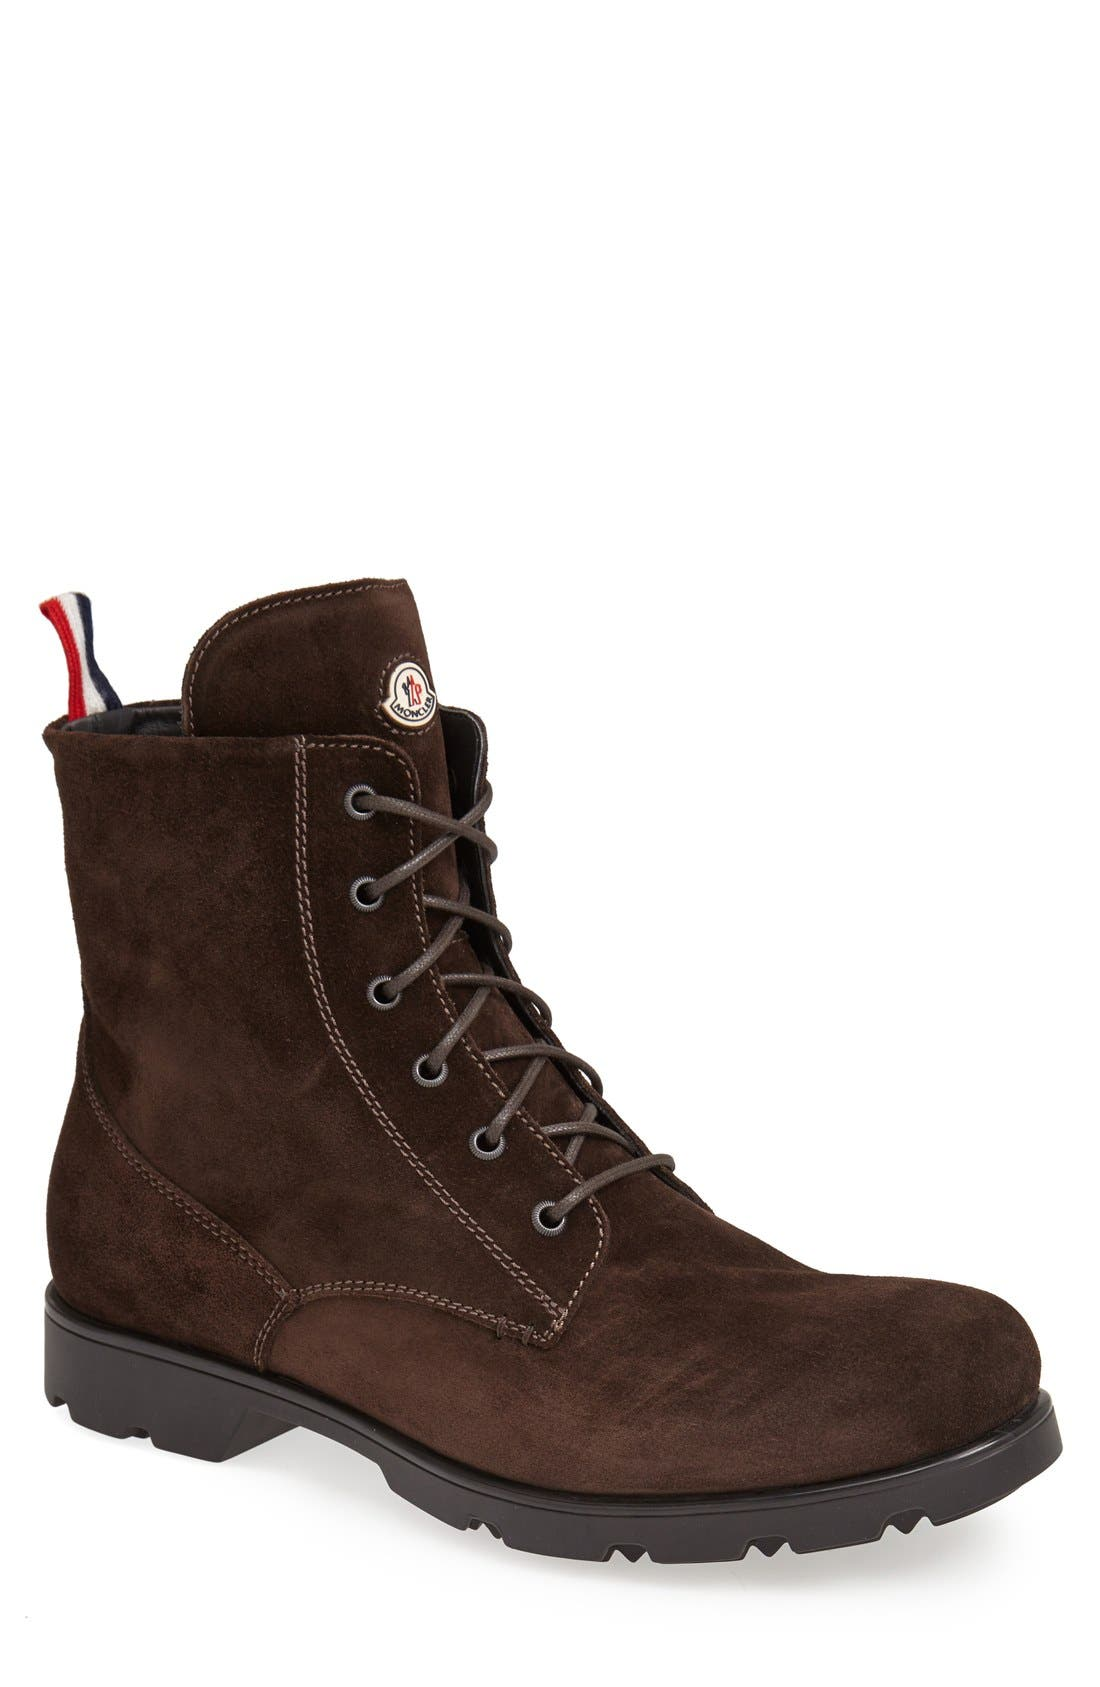 Main Image - Moncler 'Vancouver' Plain Toe Boot (Men)